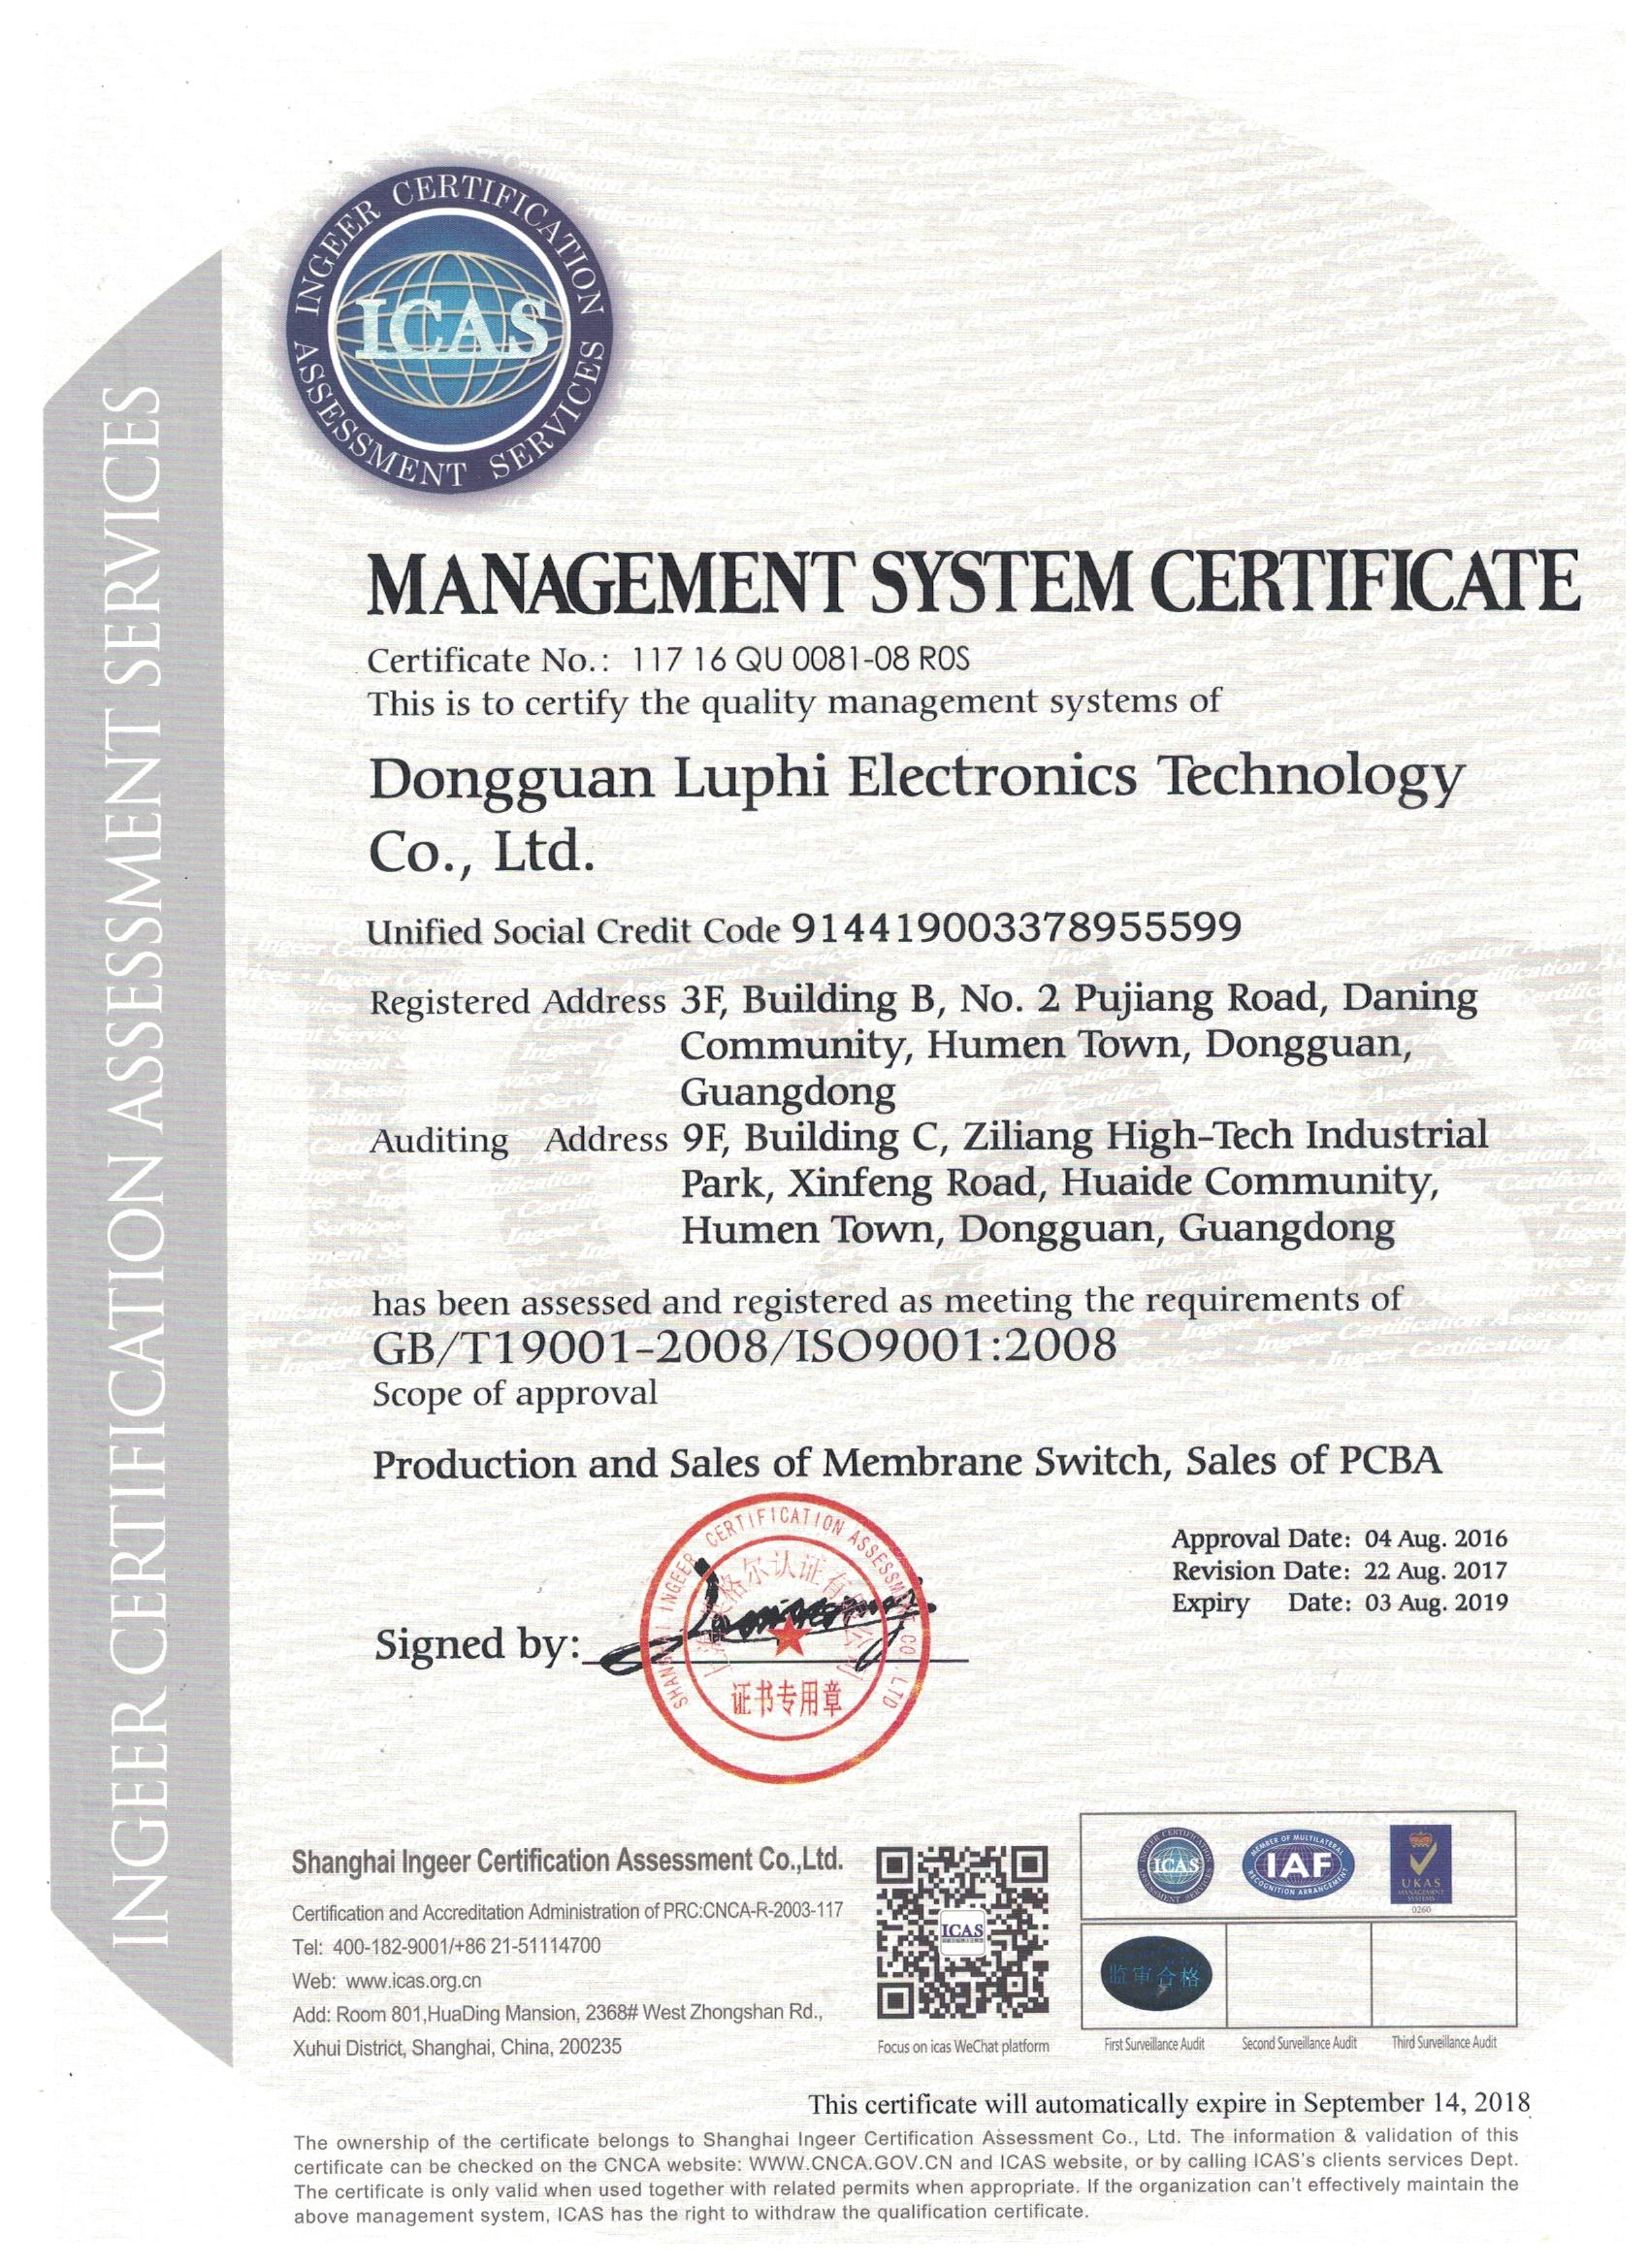 LUPHITOUCH ISO9001:2008 Certificate